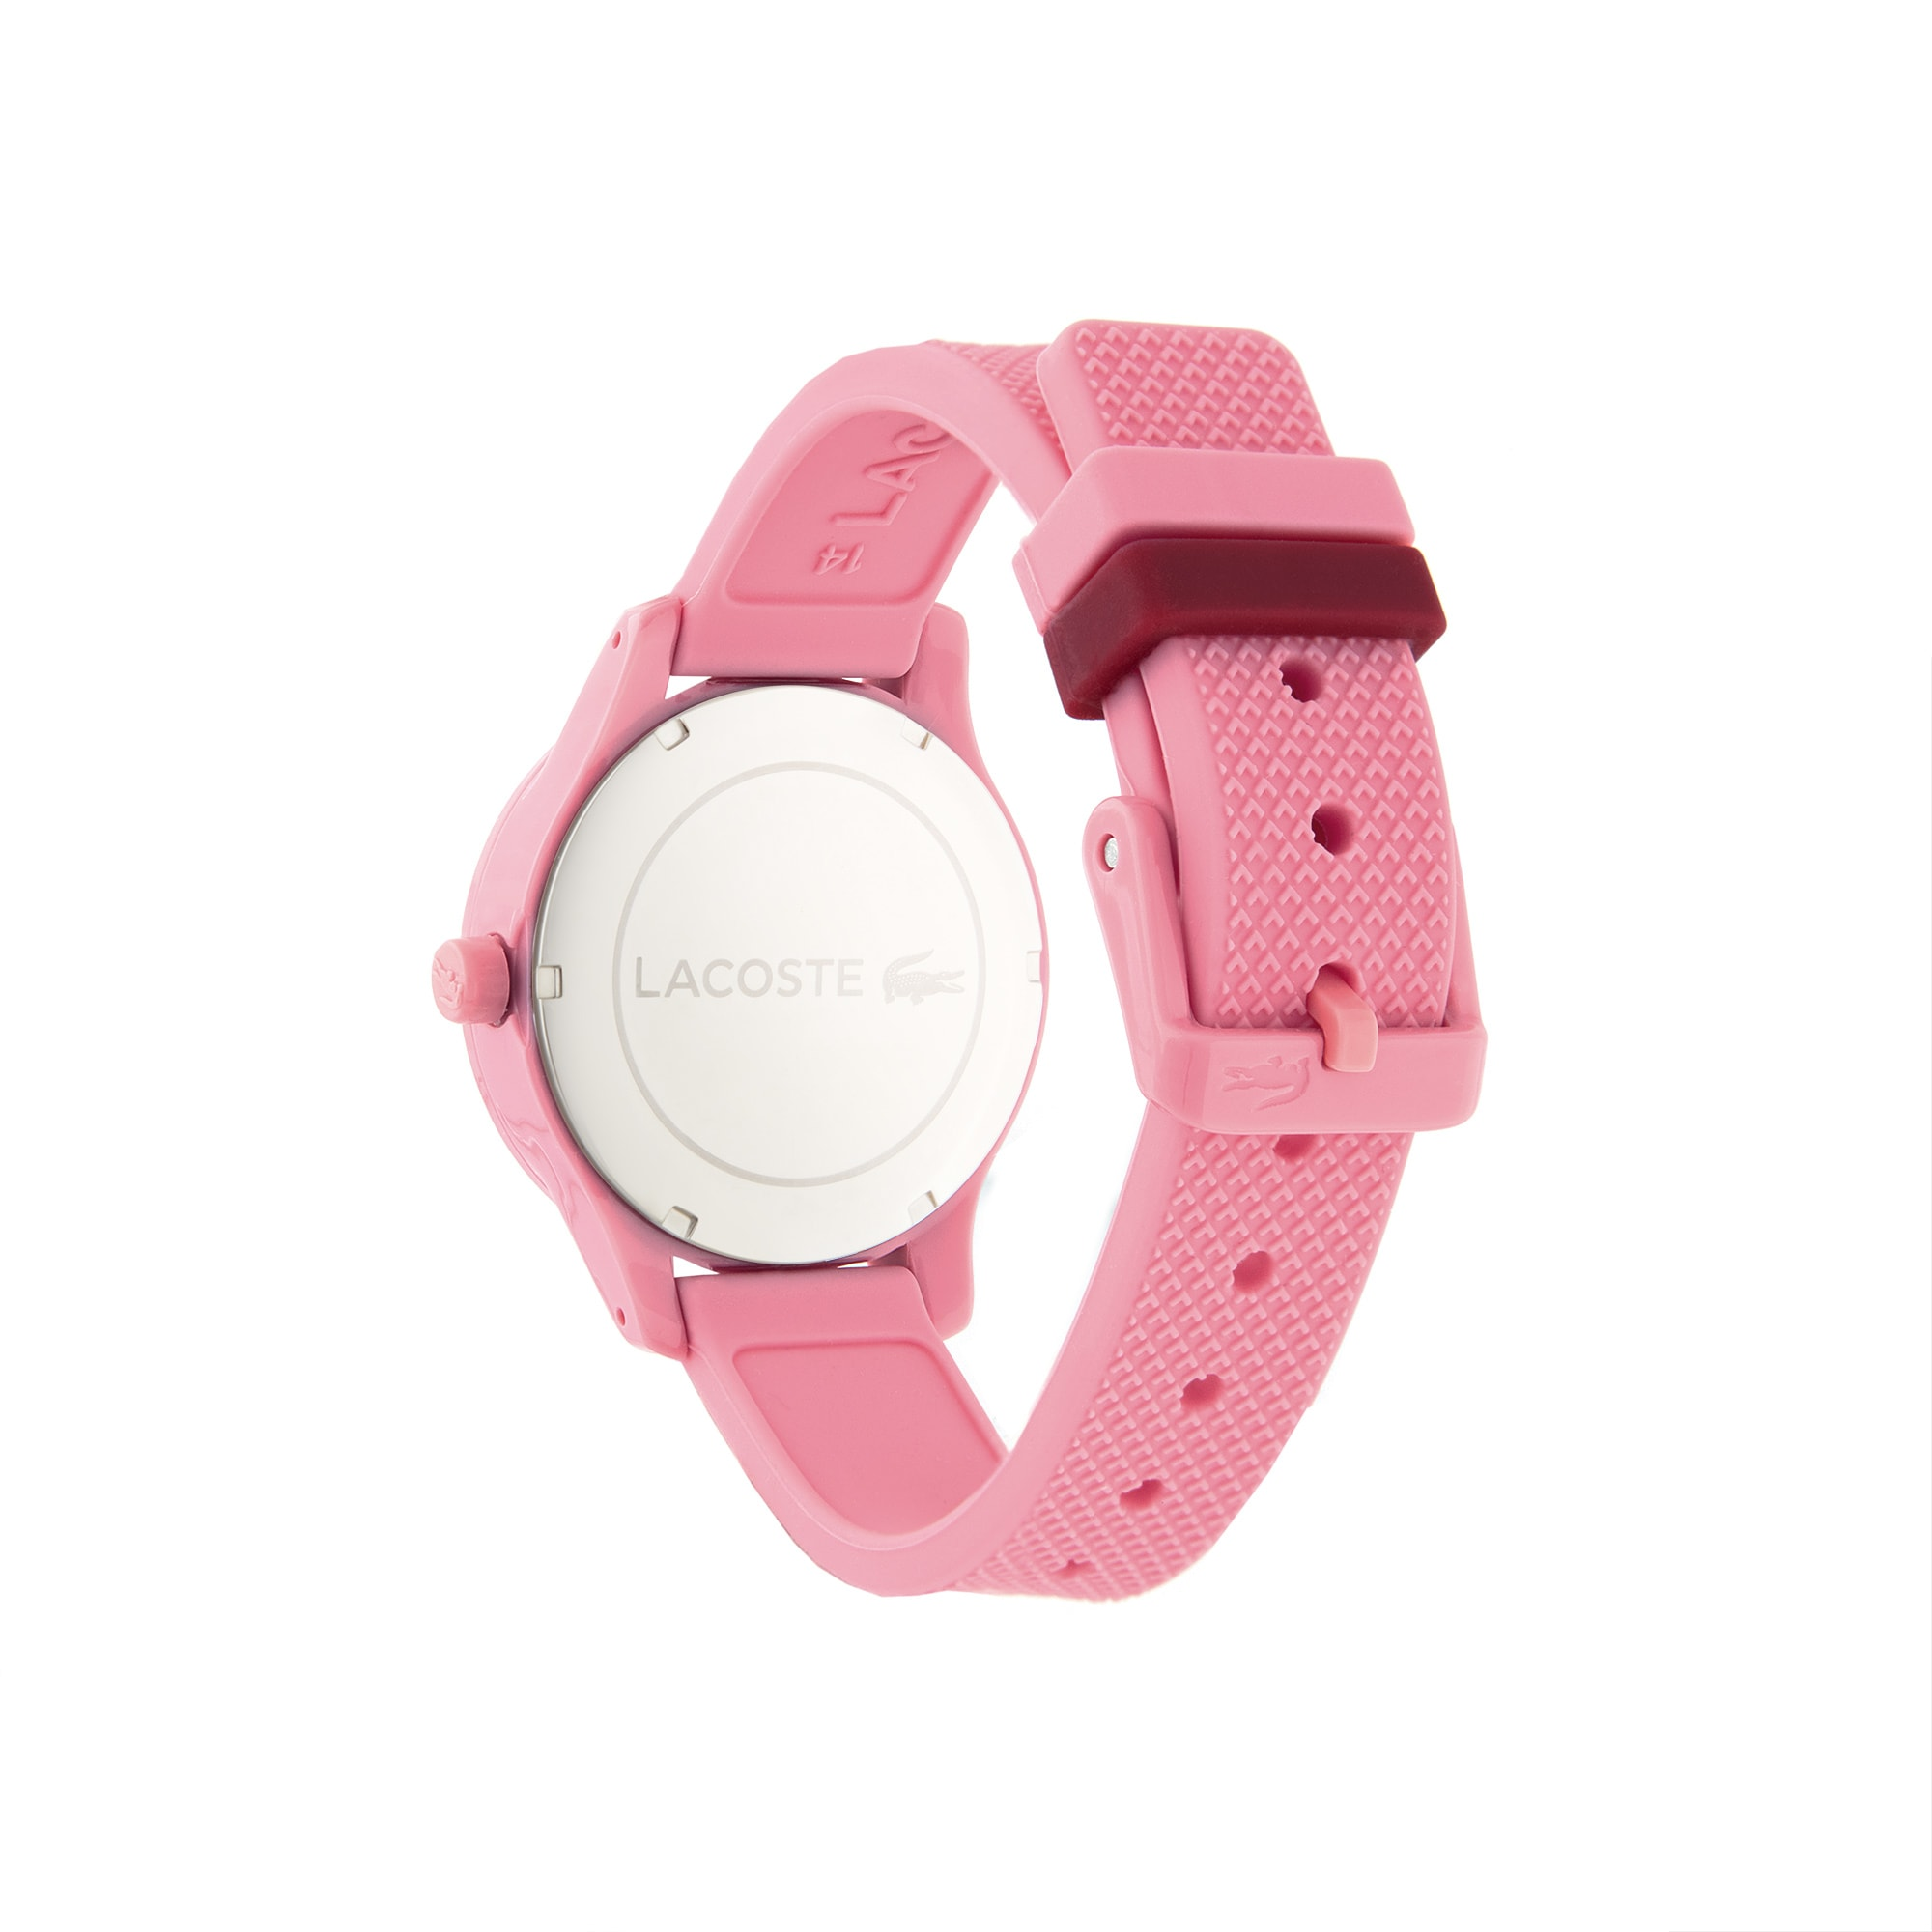 Kids Lacoste 12.12 Watch with Pink Silicone Strap